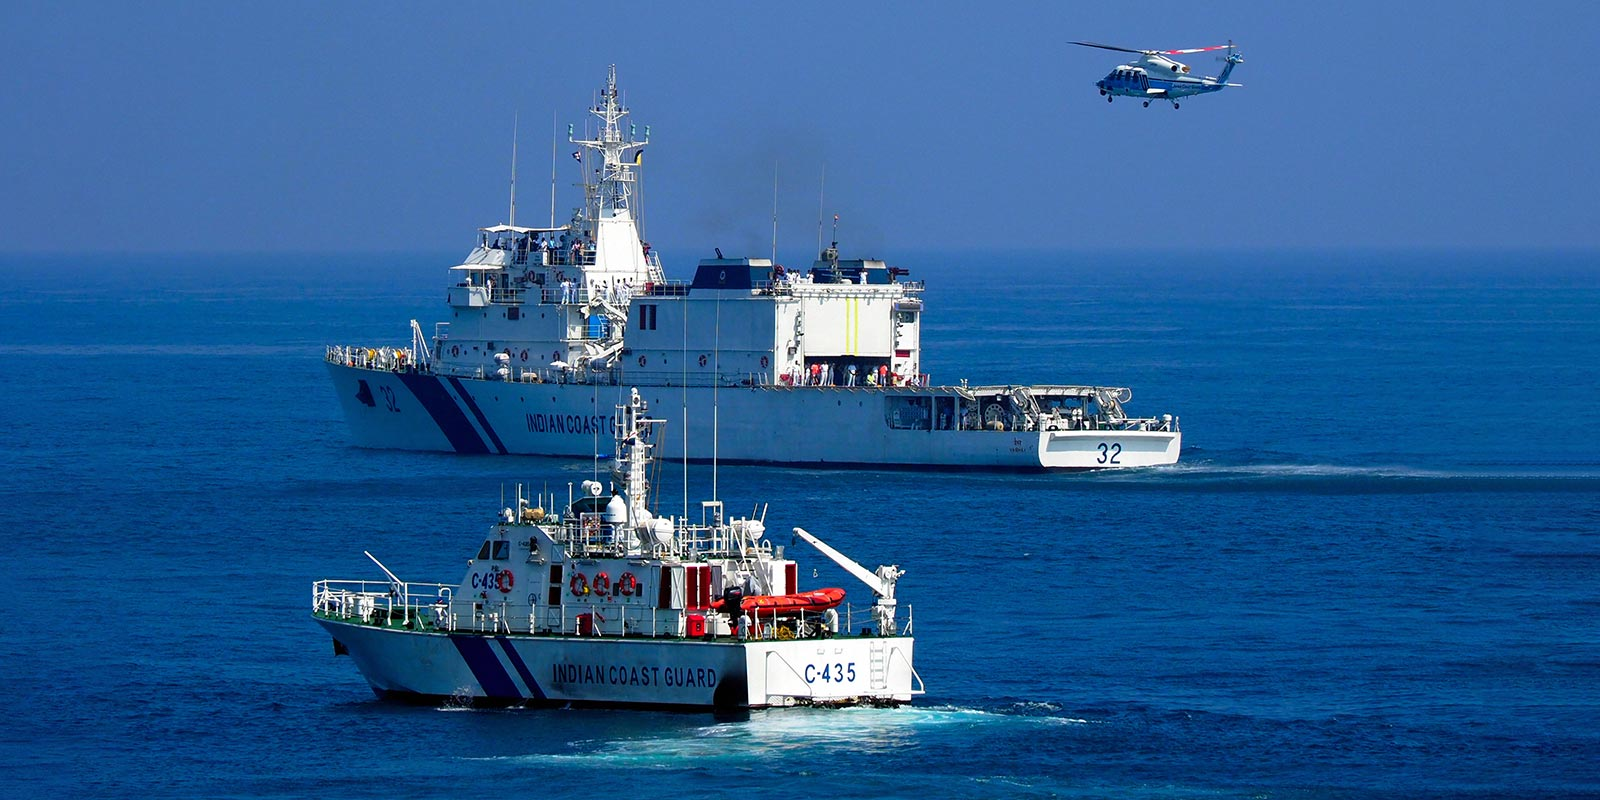 A Japan Coast Guard helicopter approaches an Indian Coast Guard patrol vessel during a joint exercise off Chennai, India, January 2018 (Photo: The Asahi Shimbun via Getty)